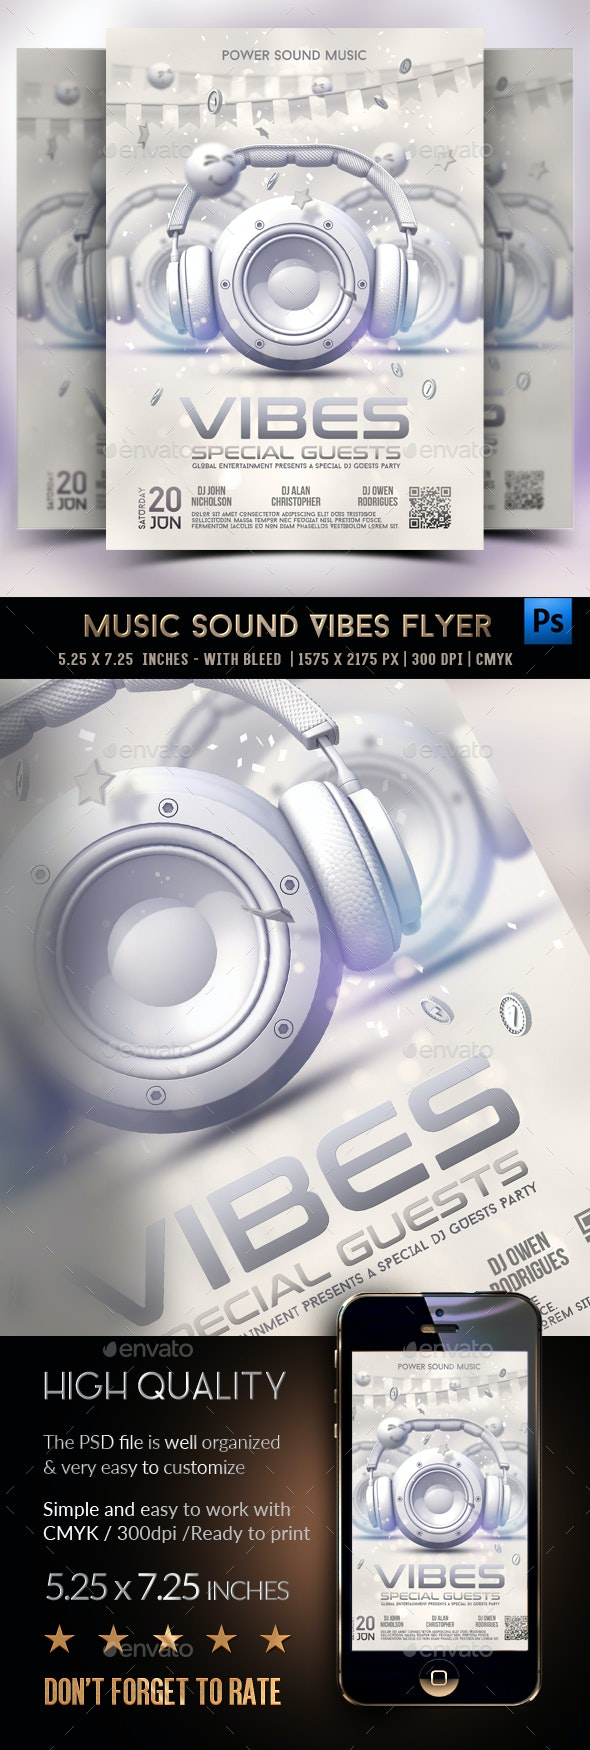 Music Sound Vibes Party Flyer - Clubs & Parties Events